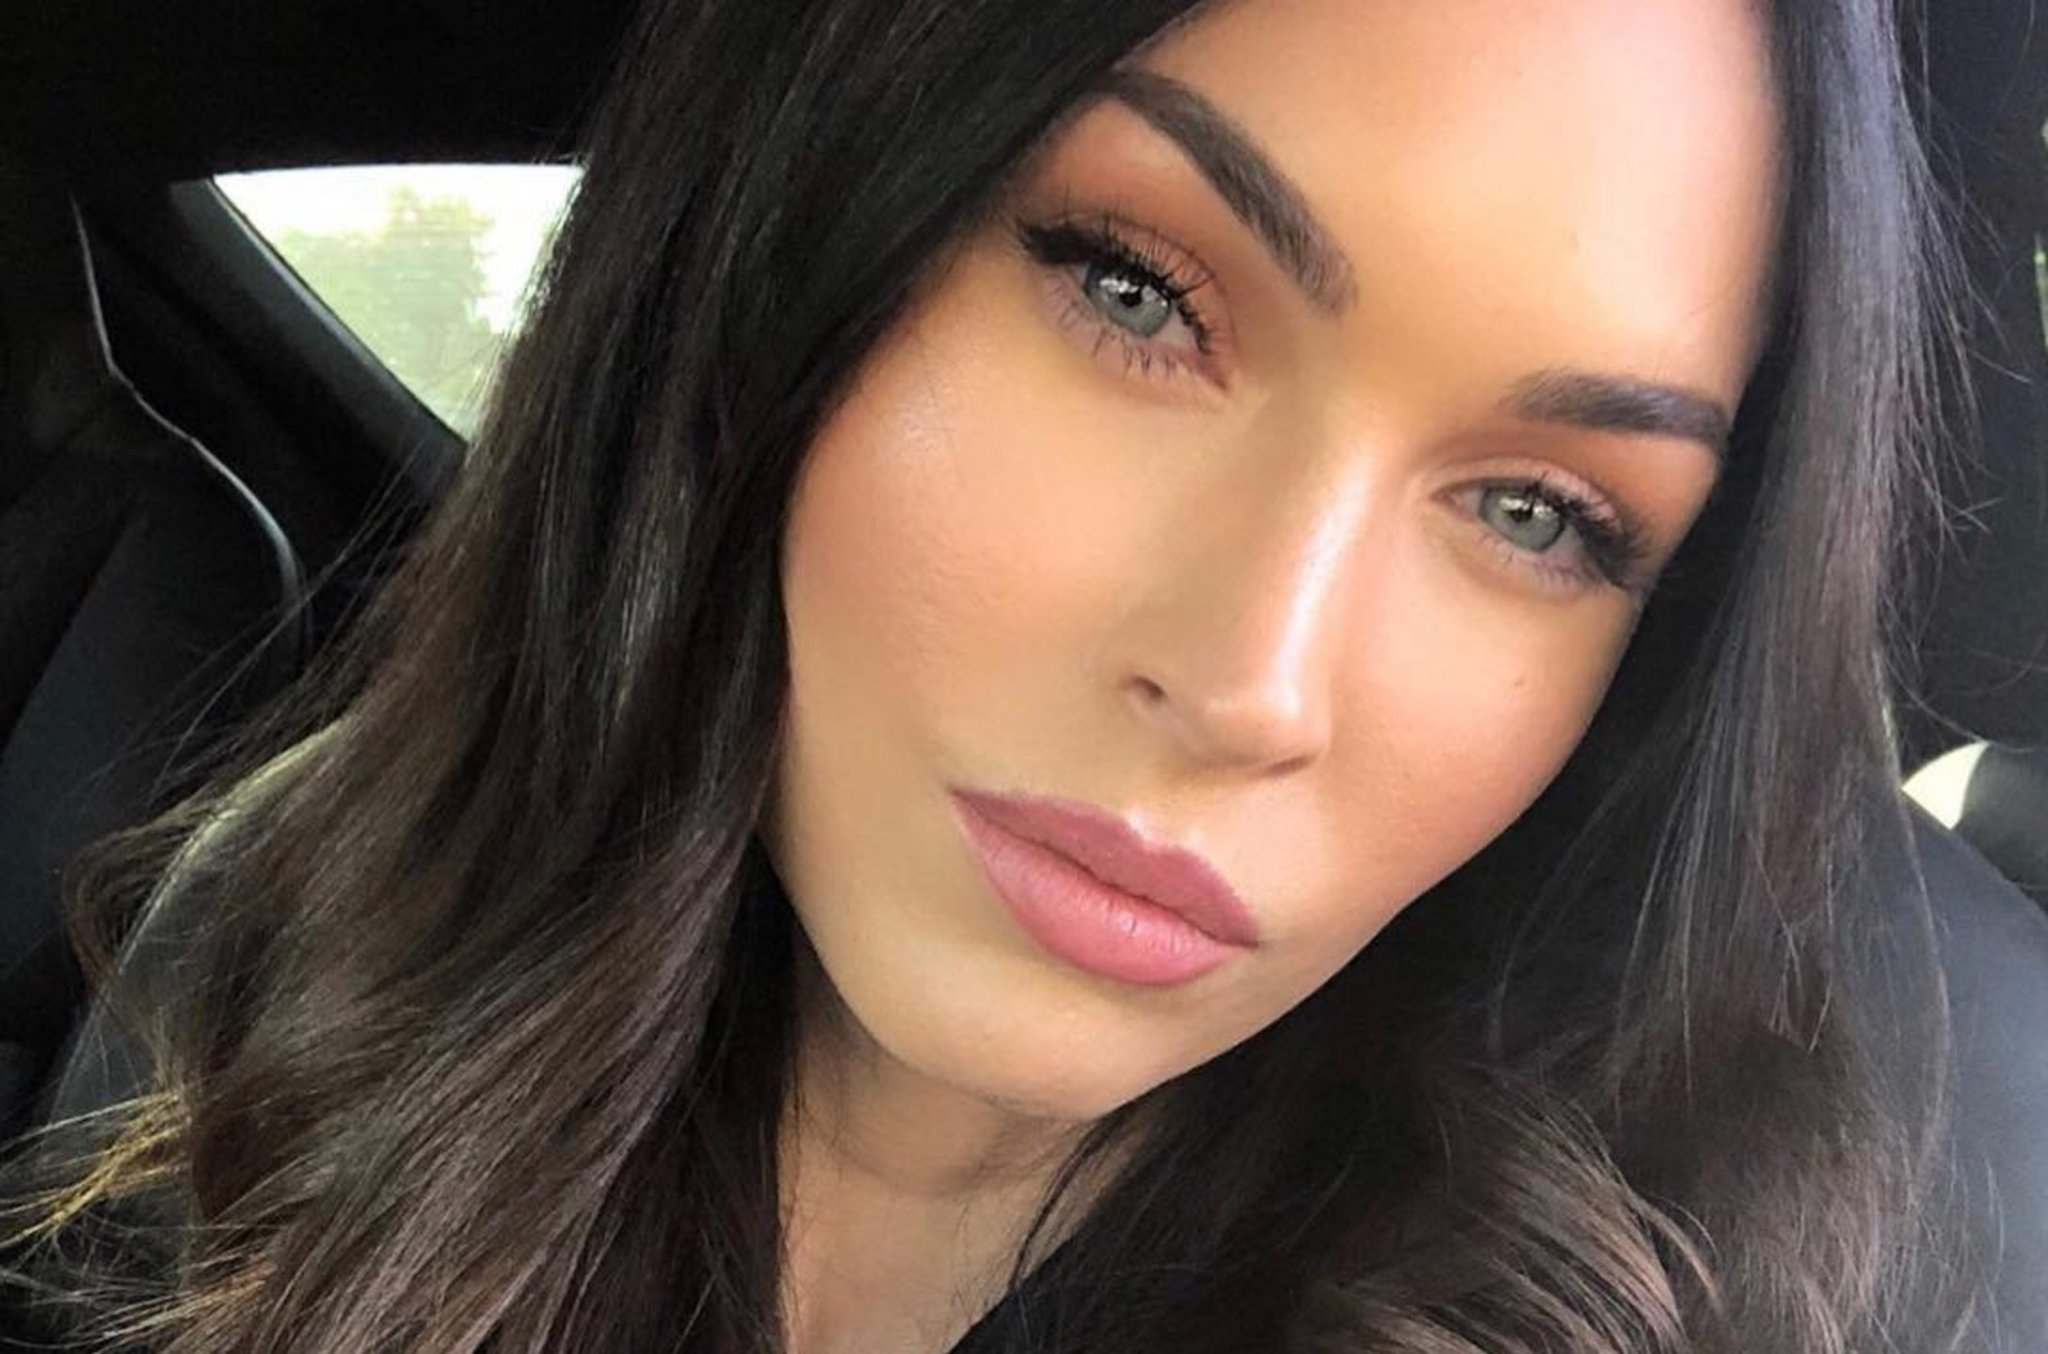 Megan Fox Sparks Engagement Rumors After She's Spotted Wearing a Diamond Ring